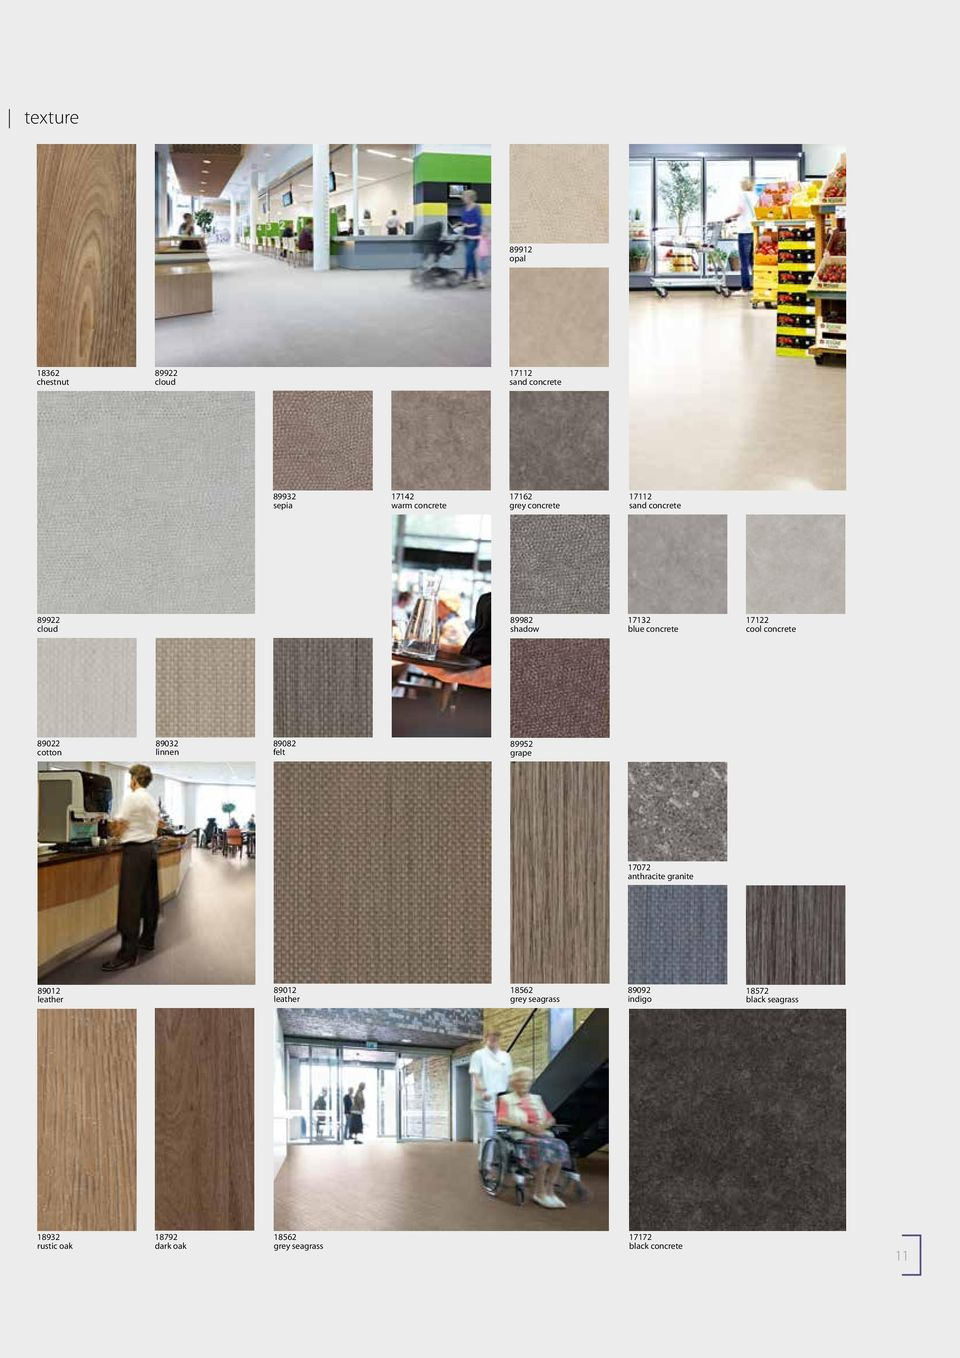 89032 linnen 89082 felt 89952 grape 17072 anthracite granite 89012 leather 89012 leather 18562 grey seagrass